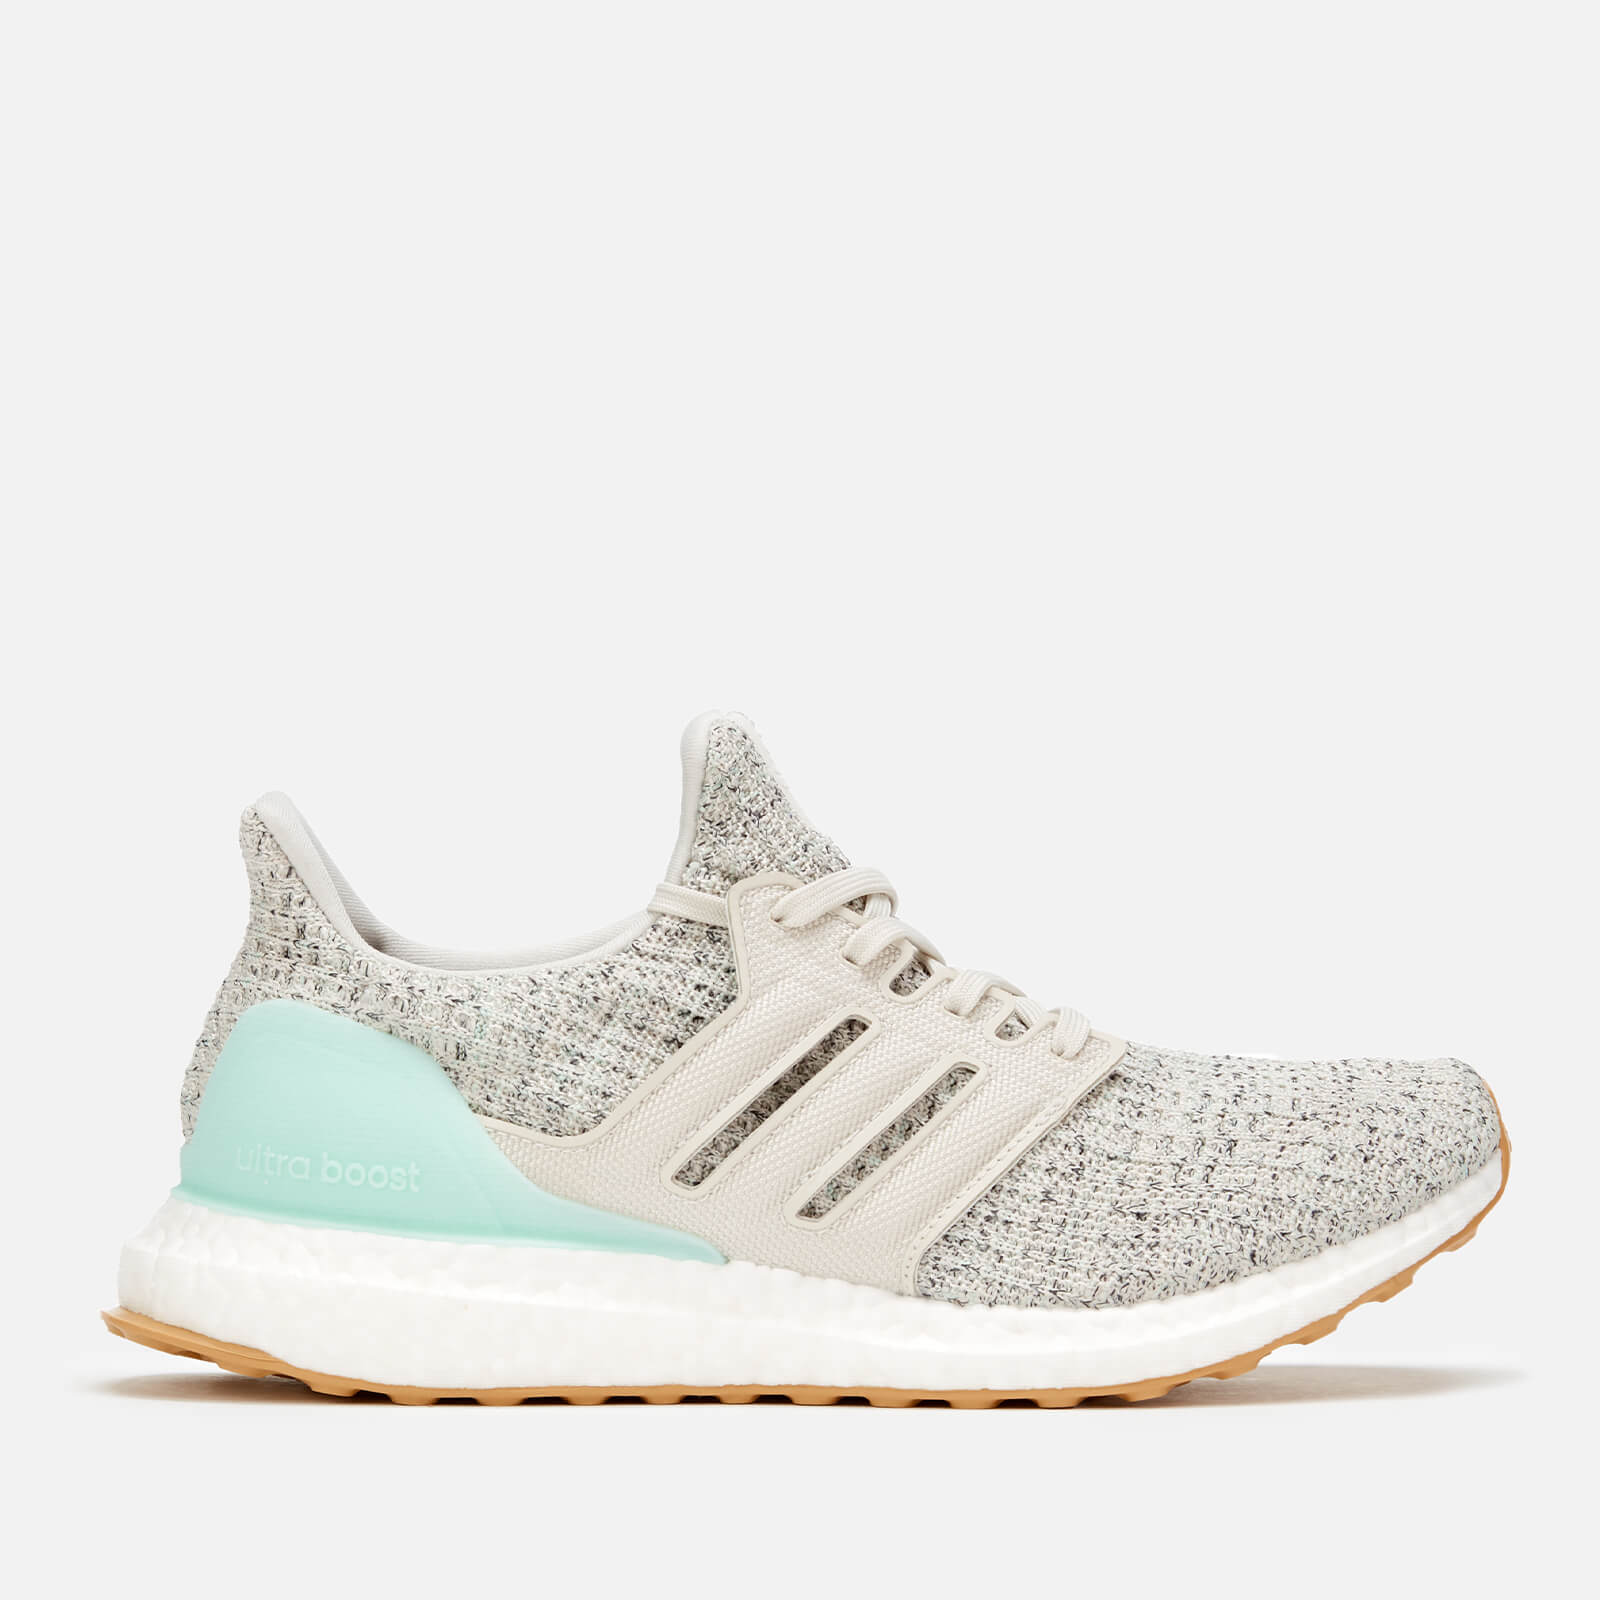 1713e65717b adidas Women s Ultraboost Trainers - Clear Mint Raw White Carbon Sports    Leisure